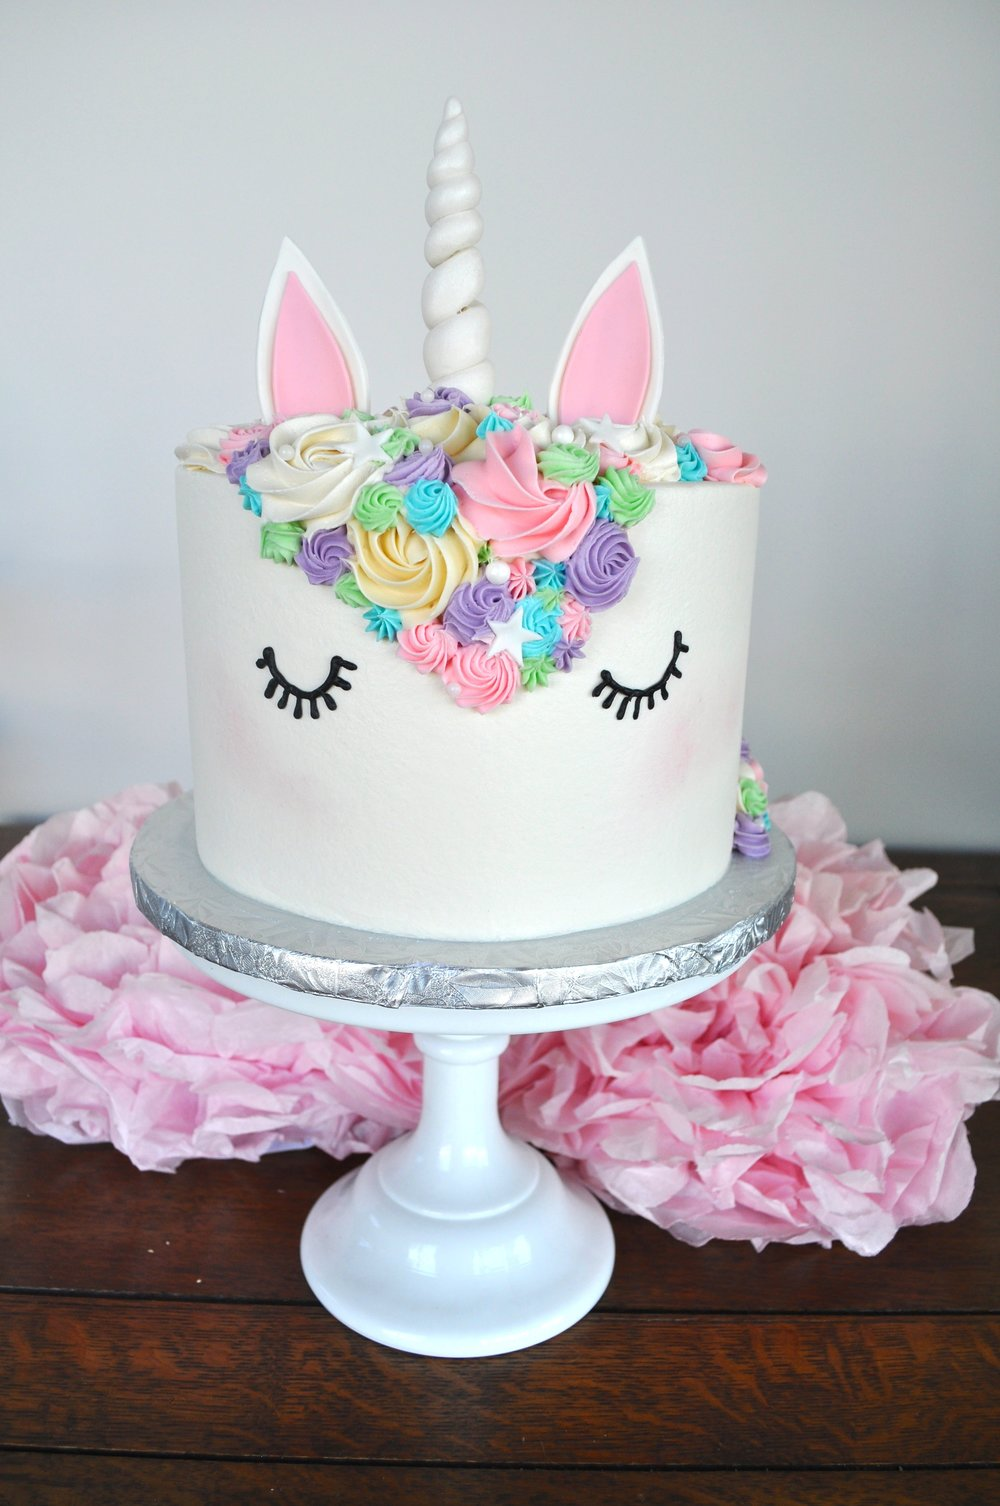 White Horn Unicorn Cake.jpg